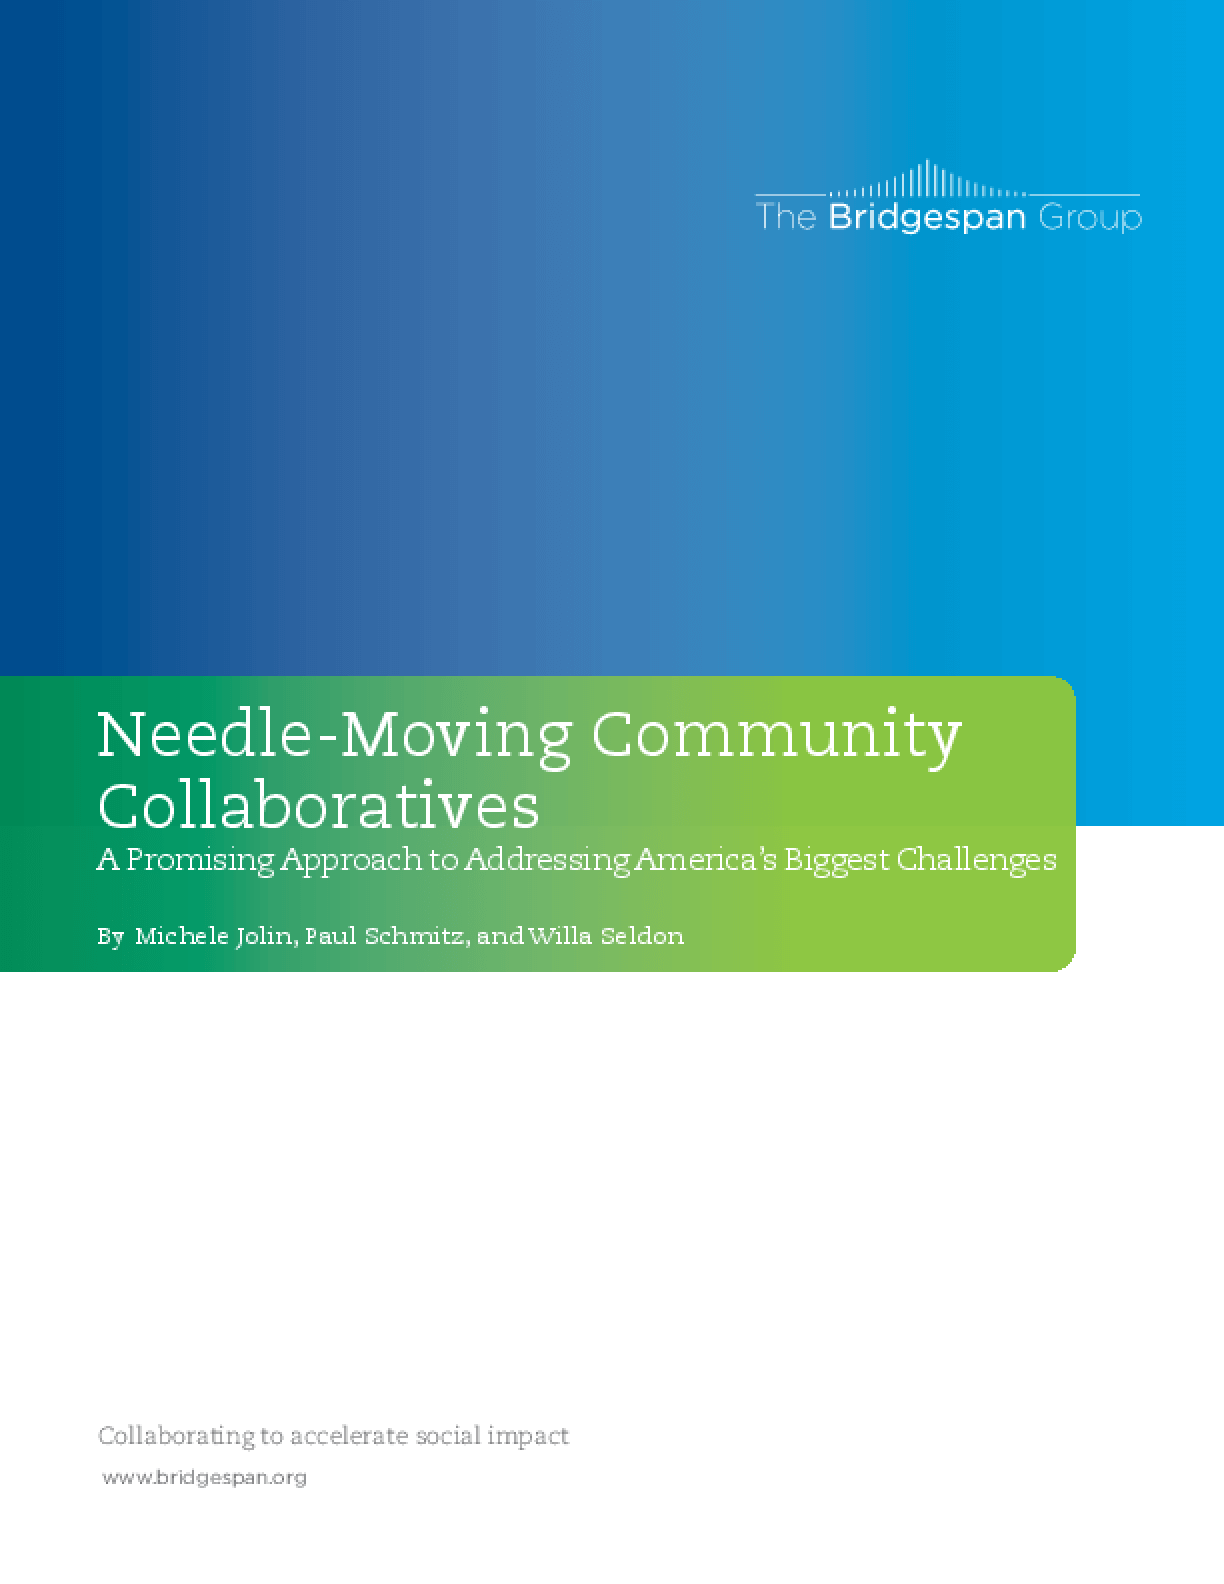 Needle-Moving Community Collaboratives: A Promising Approach to Addressing America's Biggest Challenges